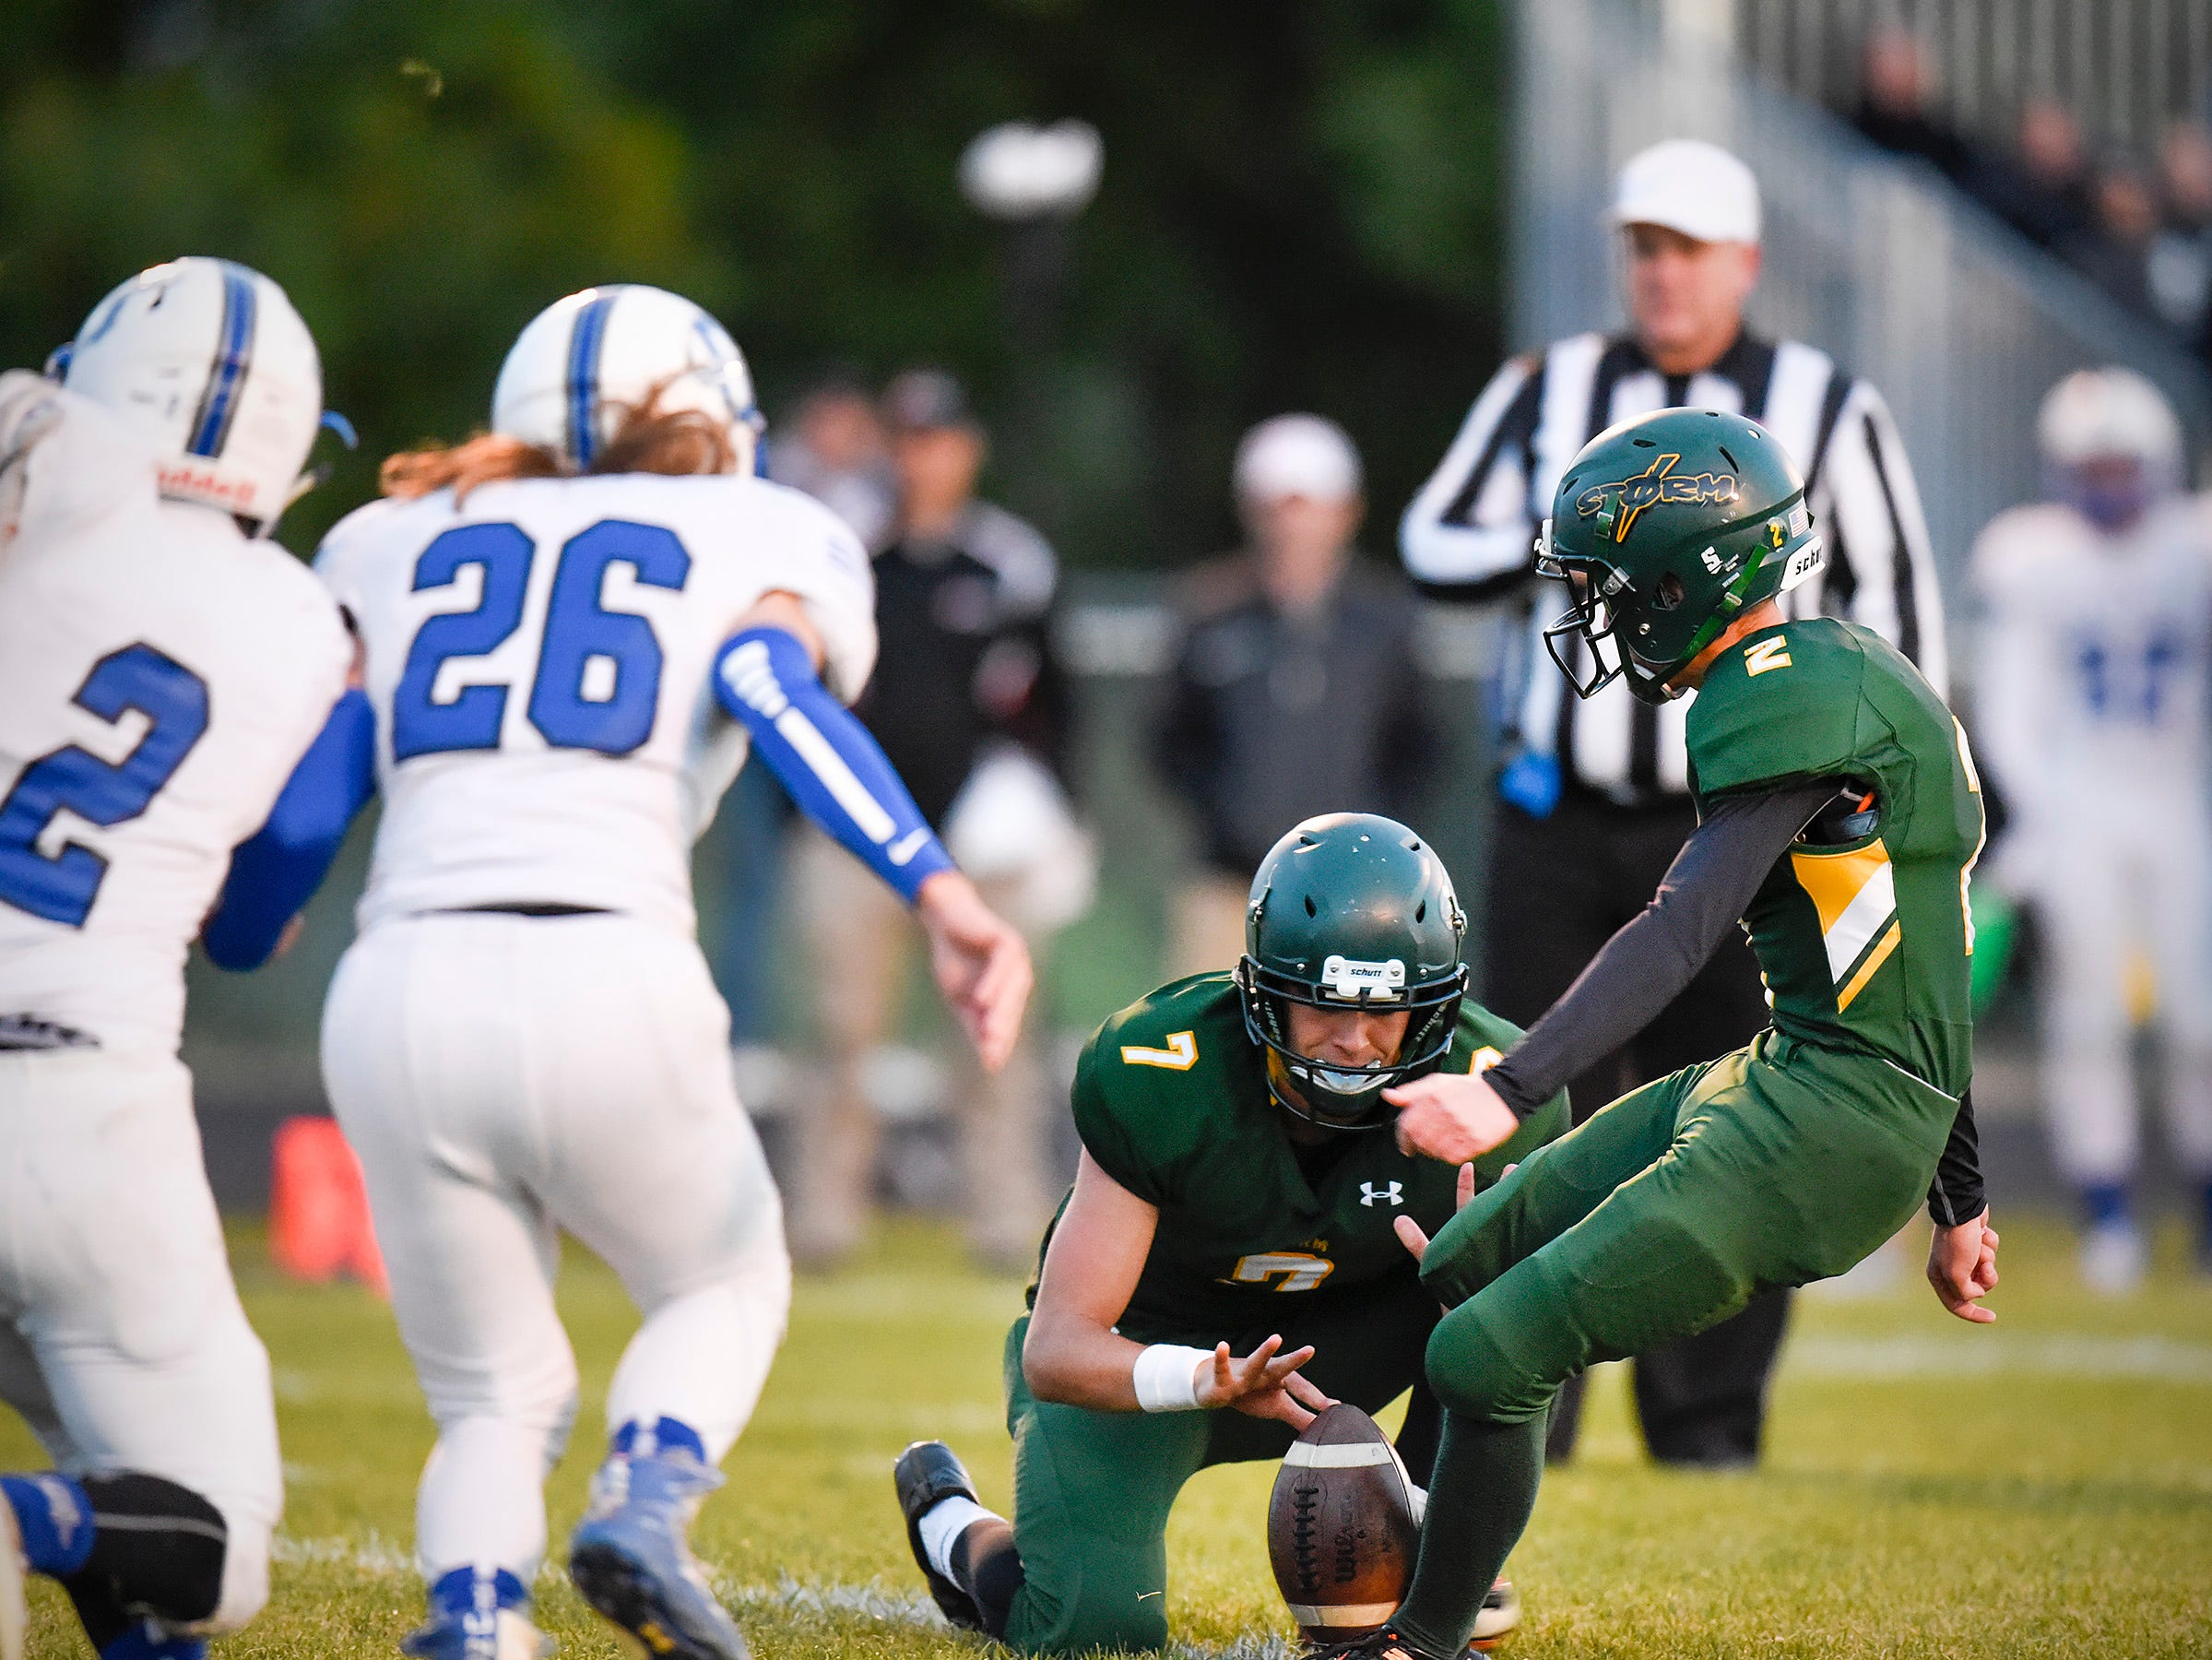 Sauk Rapids' Durham Welch kicks the extra point after scoring against Sartell during the first half Friday, Sept. 28, in Sauk Rapids.